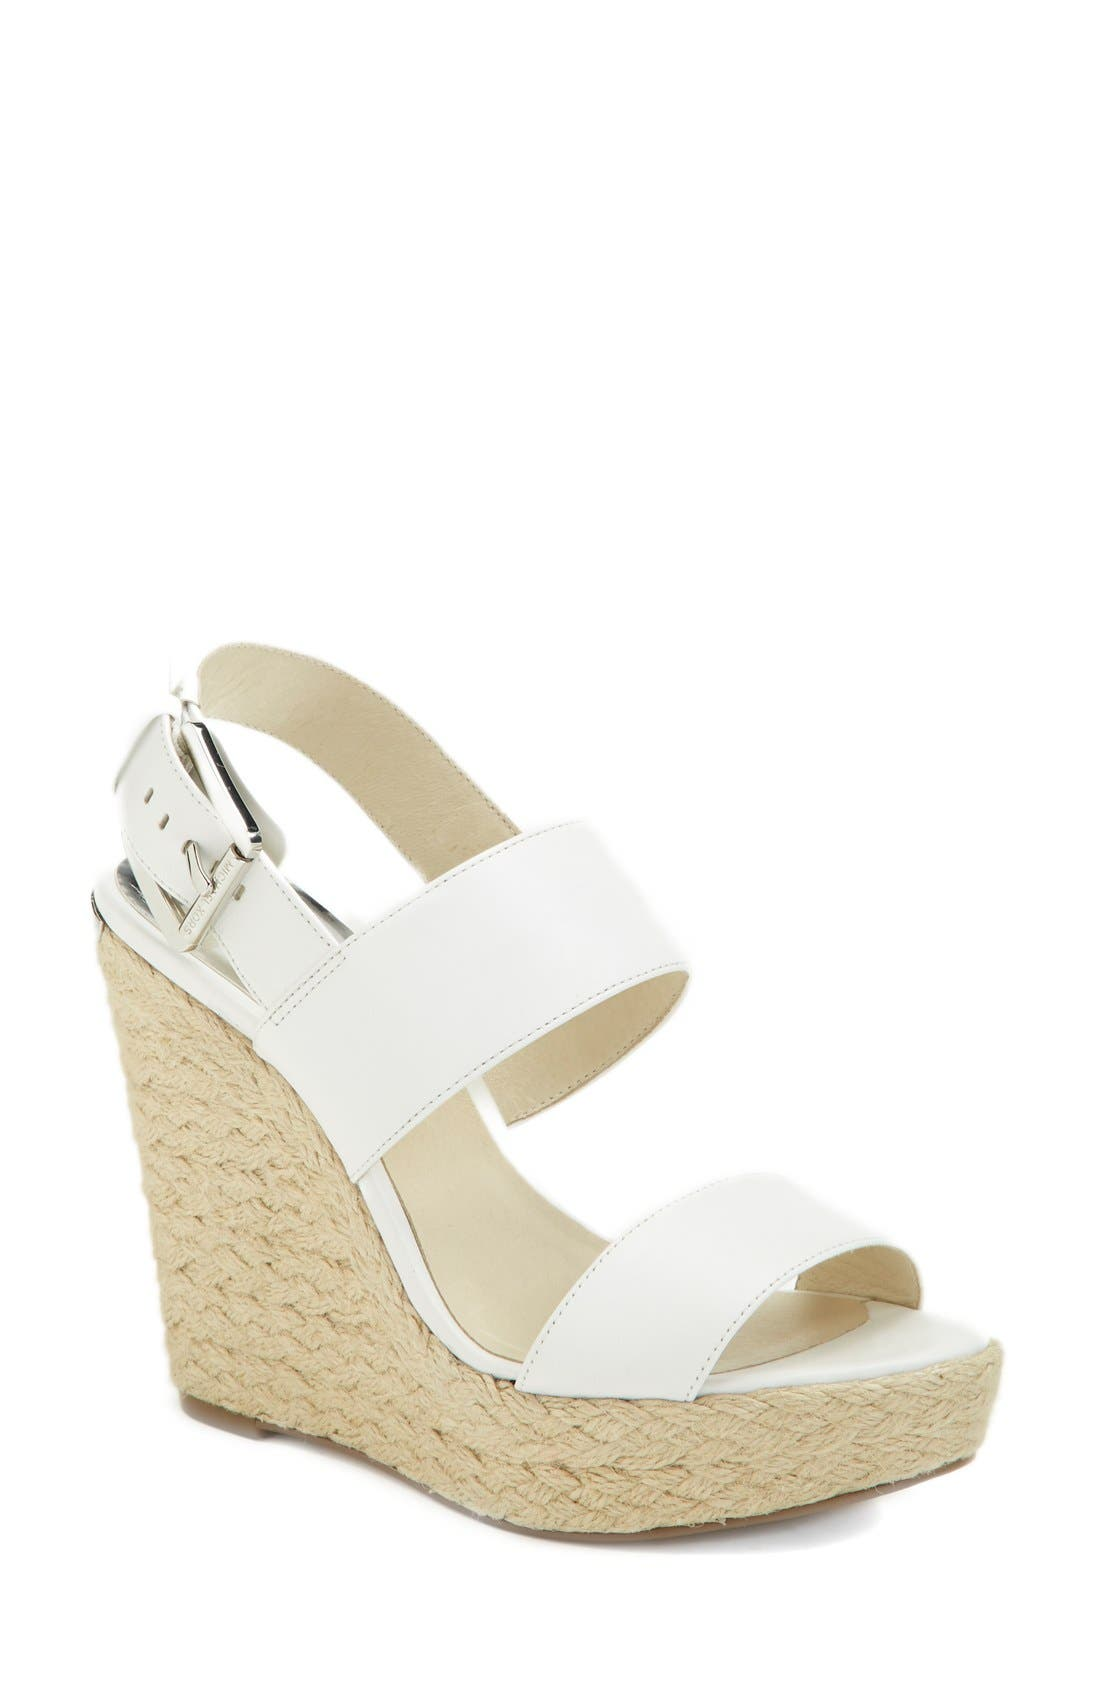 'Posey' Espadrille Wedge Sandal,                         Main,                         color, 100